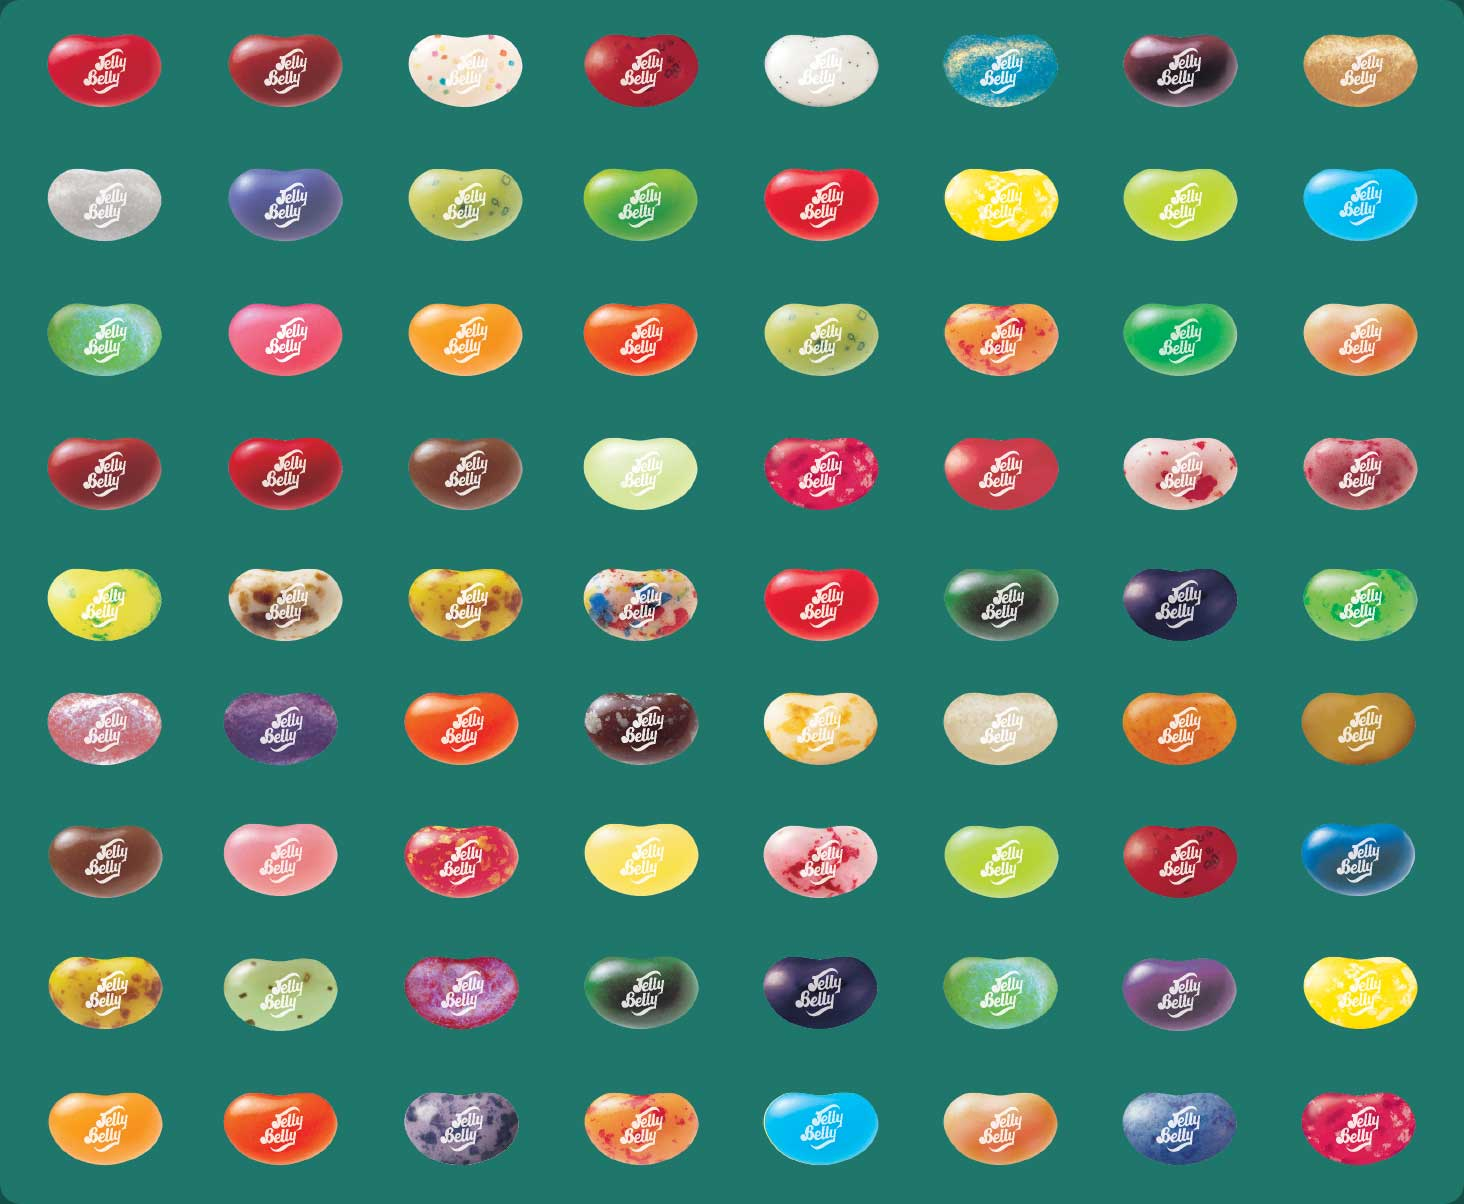 Display of 72 flavors of Jelly Belly jelly beans